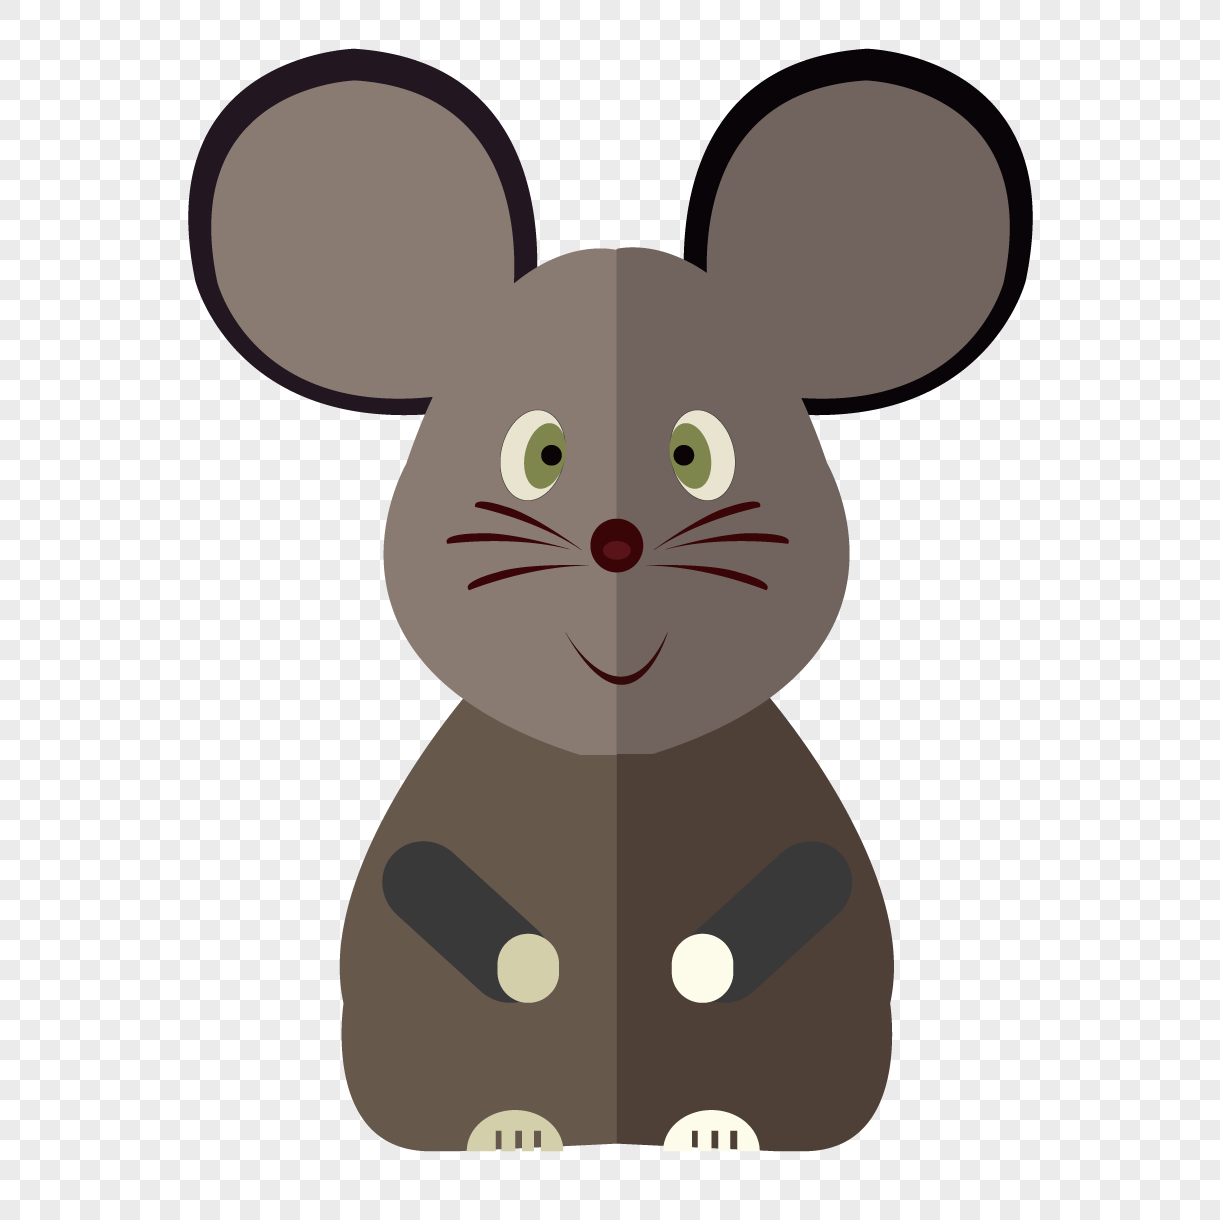 1220x1220 Mouse Vector Png Image Picture Free Download 400174262